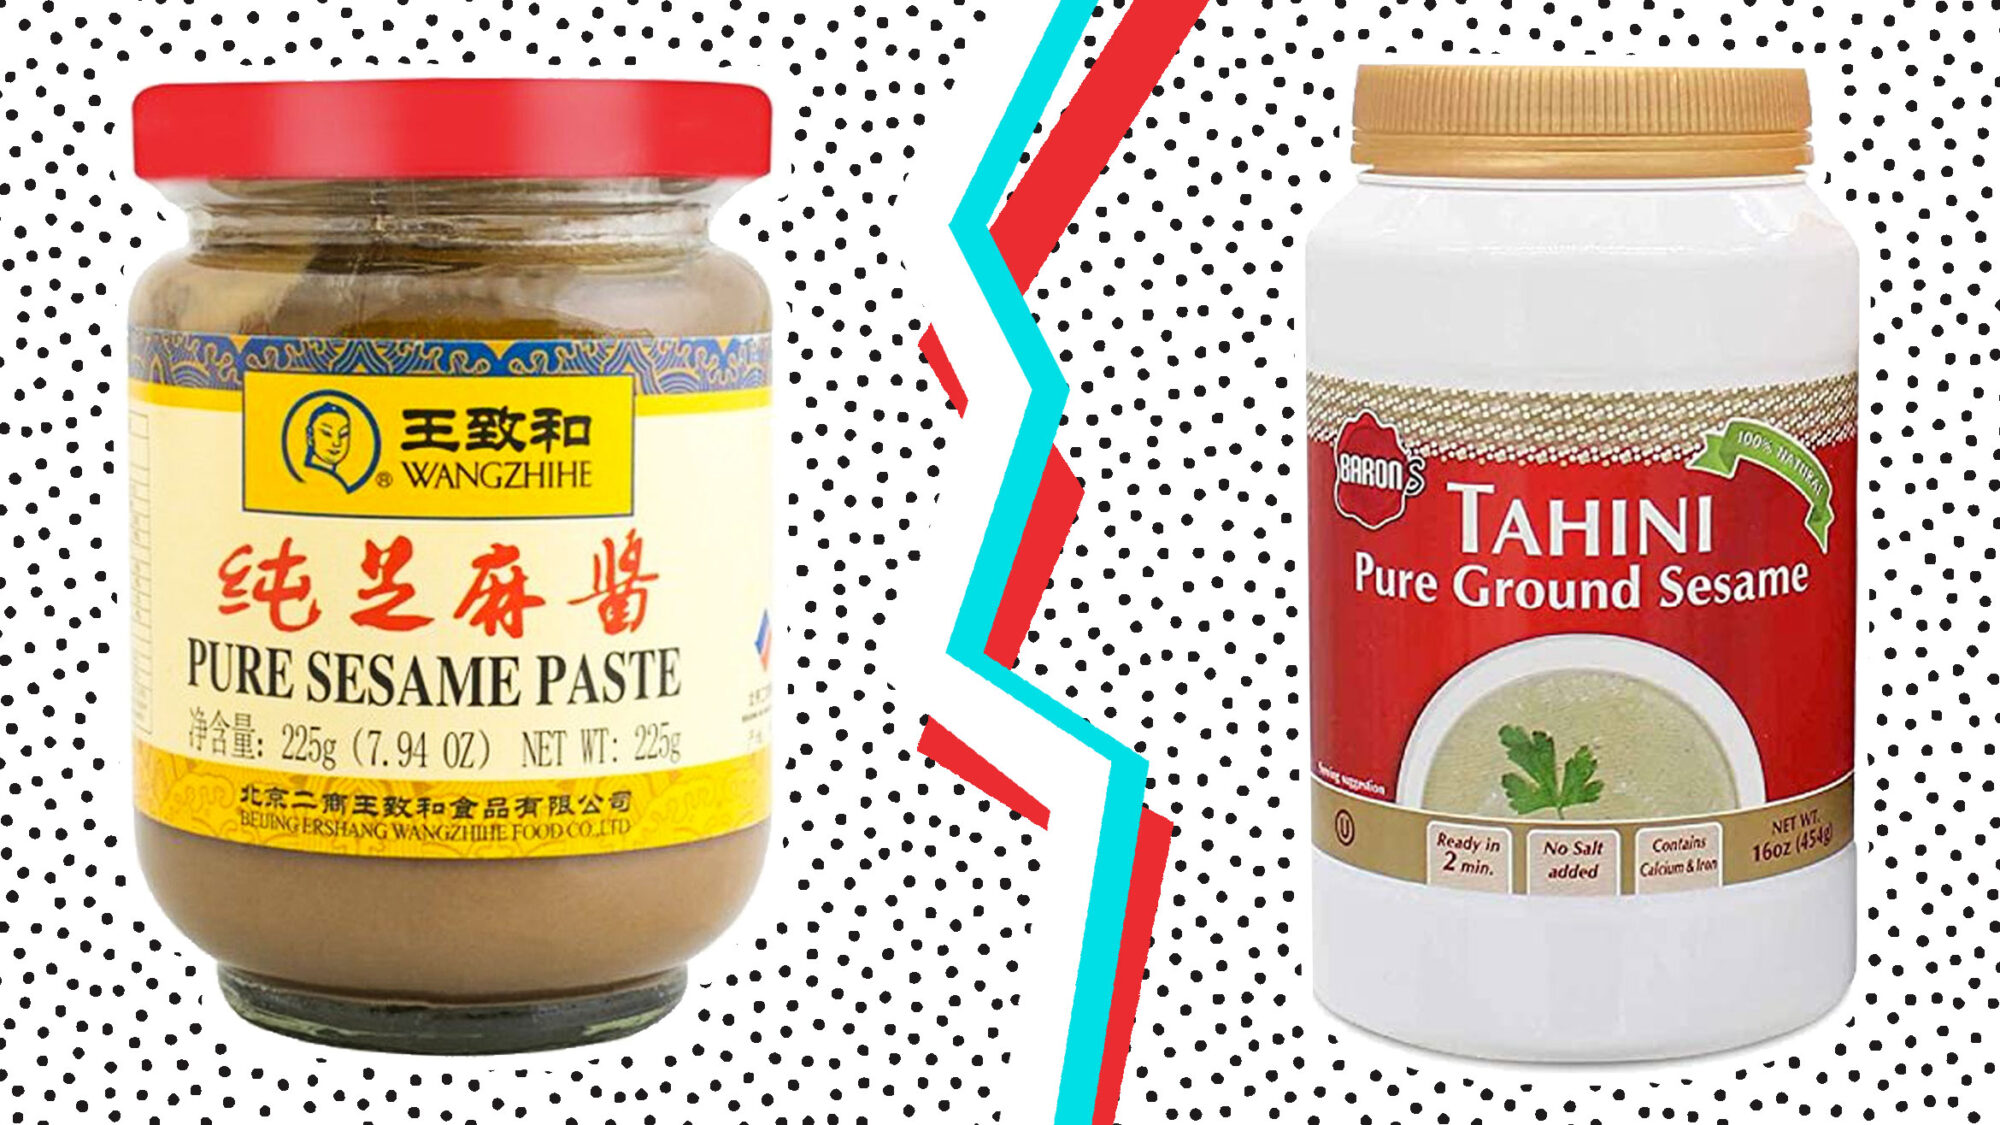 Article-Chinese-Sesame-Paste-Tahini